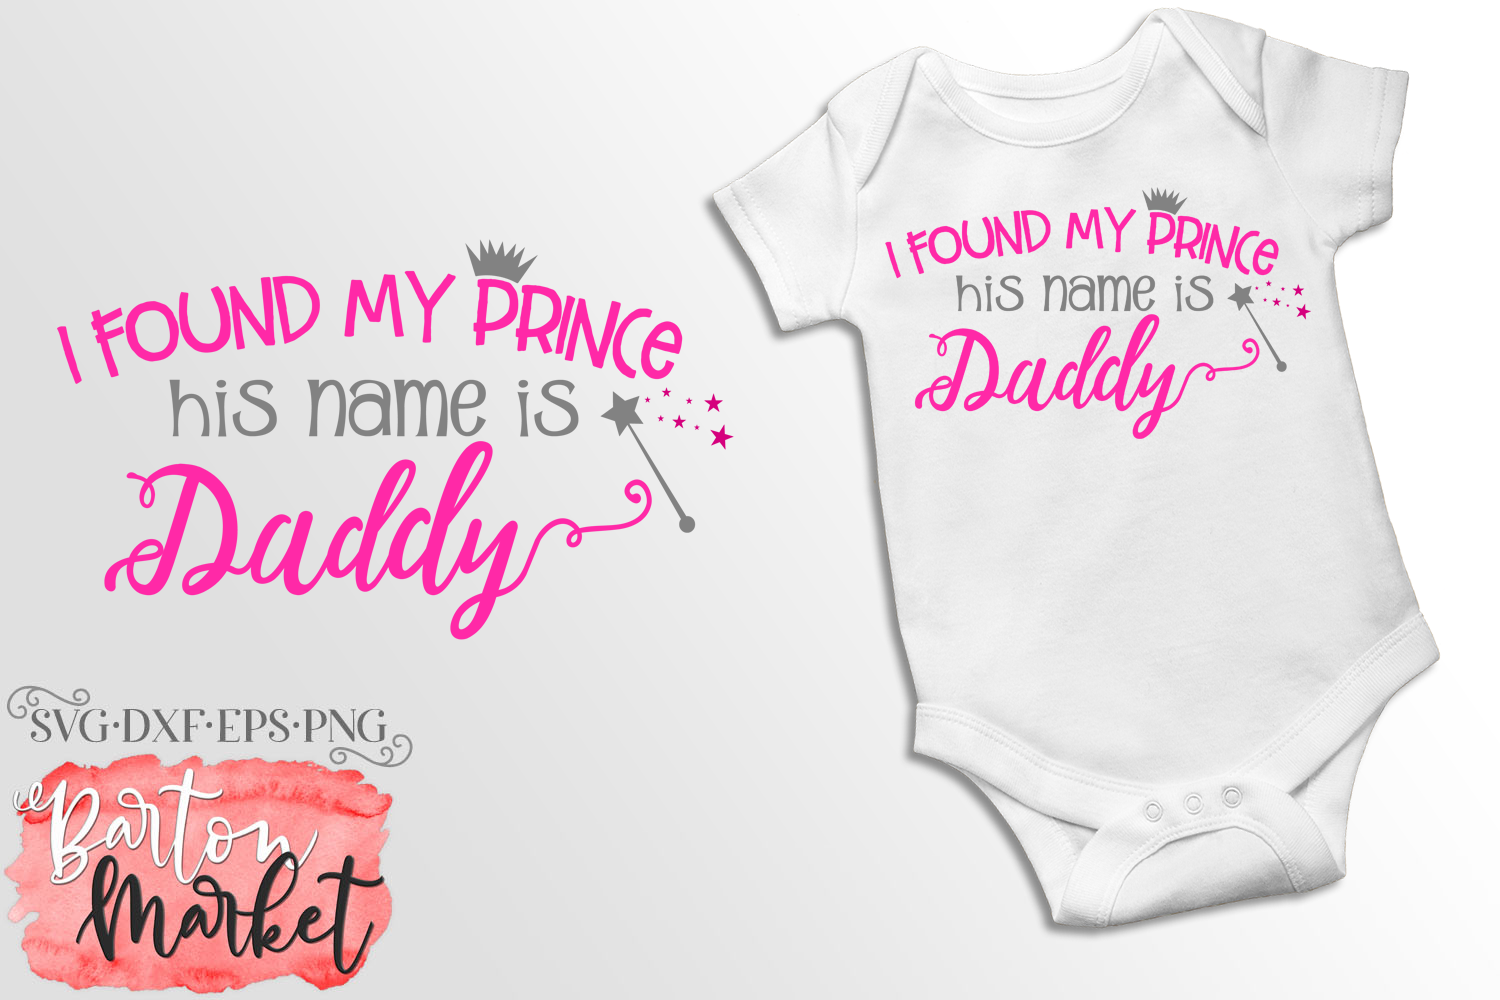 Download Free I Found My Prince His Name Is Daddy Svg Graphic By Barton for Cricut Explore, Silhouette and other cutting machines.